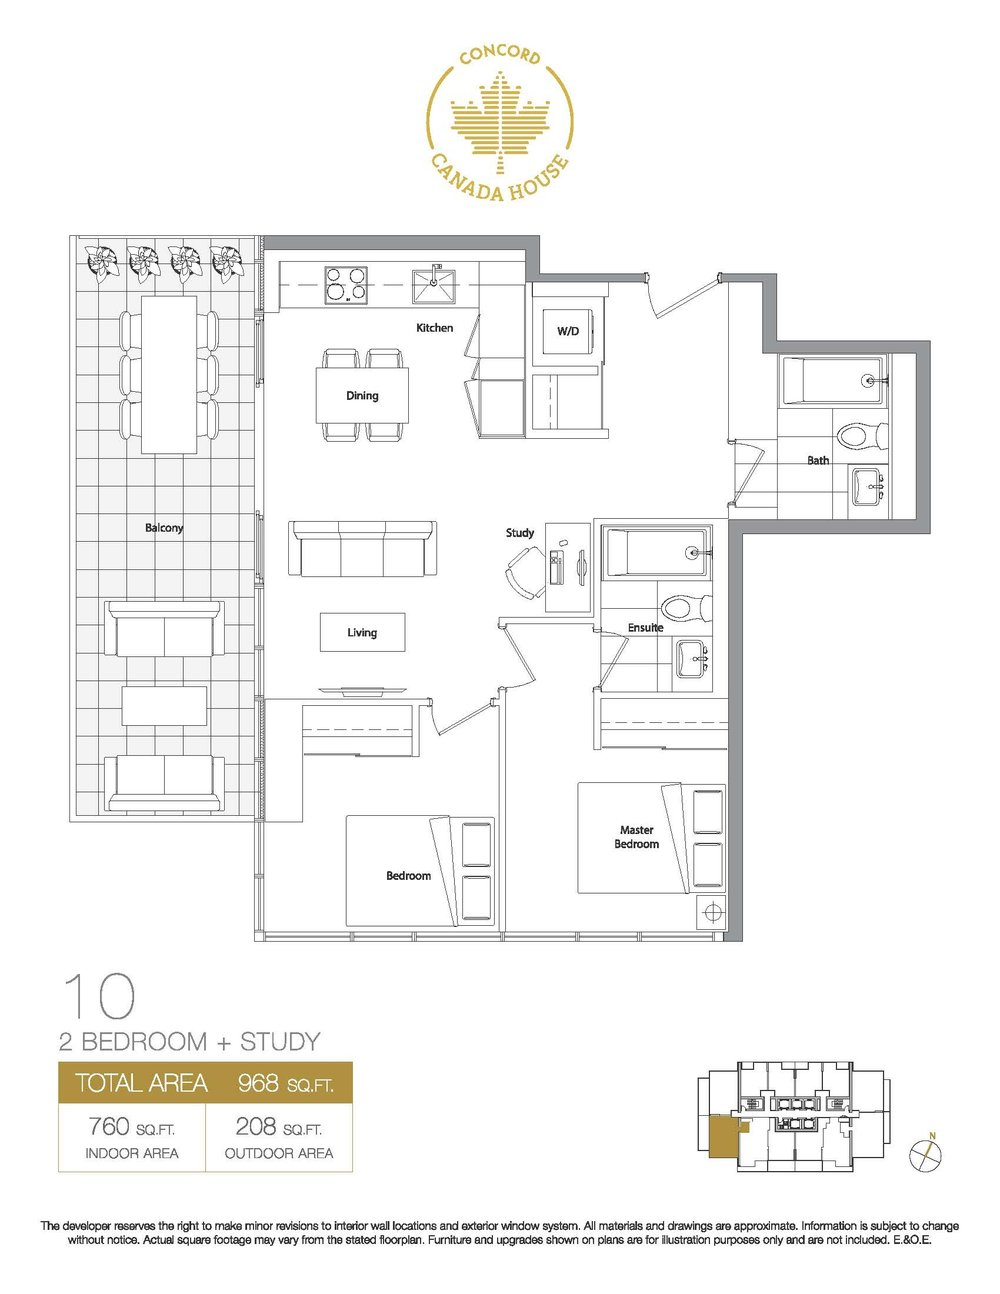 CCH_FloorPlans_LT_170509_Page_09 - Copy.jpg